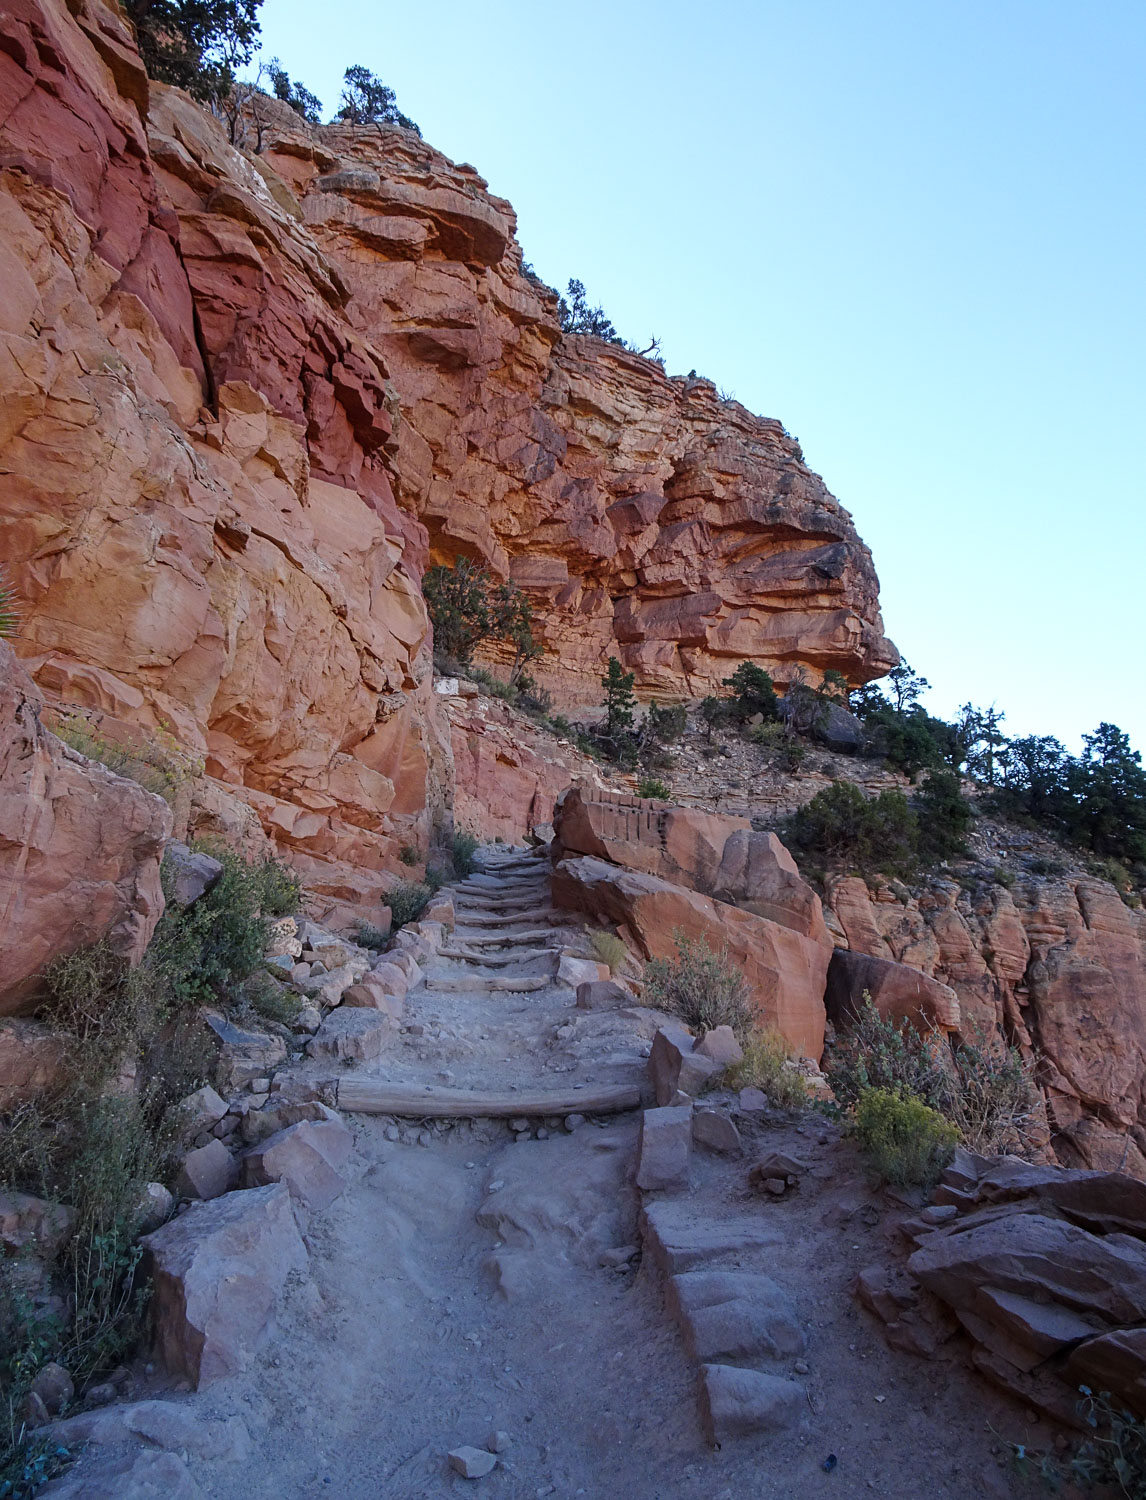 Heading back up the South Kaibab trail to the rim of the canyon